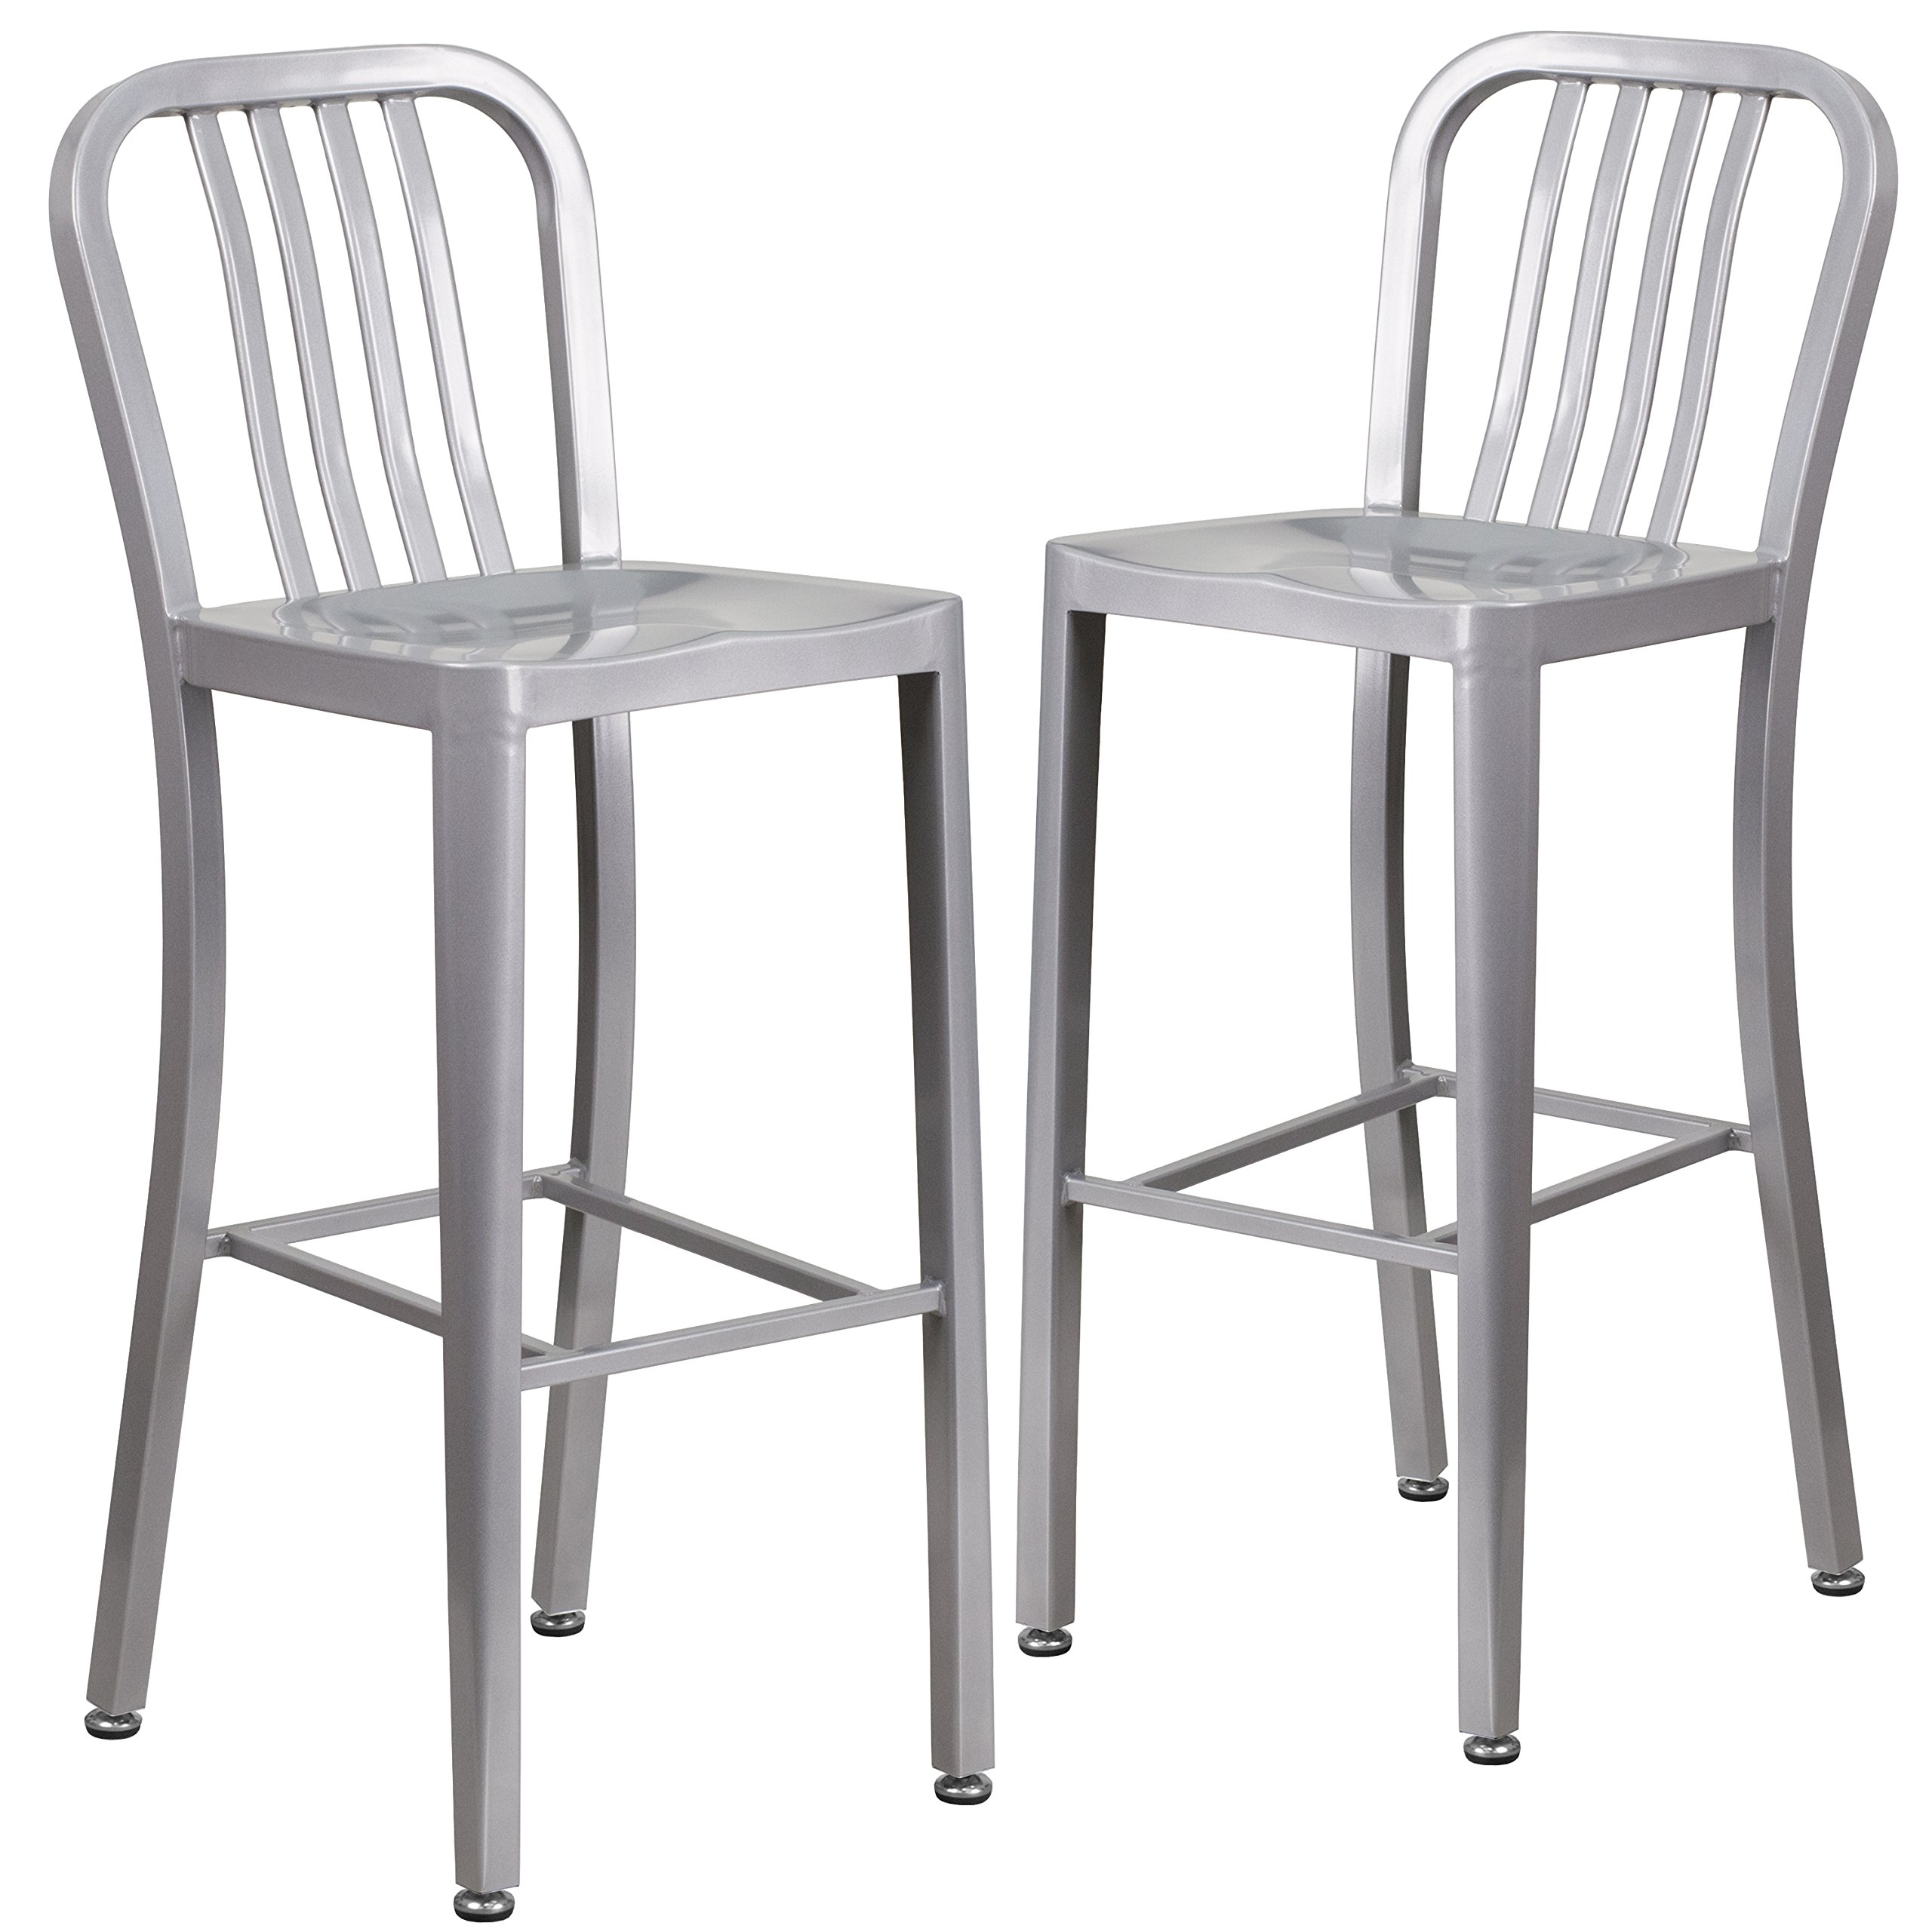 Flash Furniture 2 Pack 30'' High Silver Metal Indoor-Outdoor Barstool with Vertical Slat Back - 2-CH-61200-30-SIL-GG by Flash Furniture